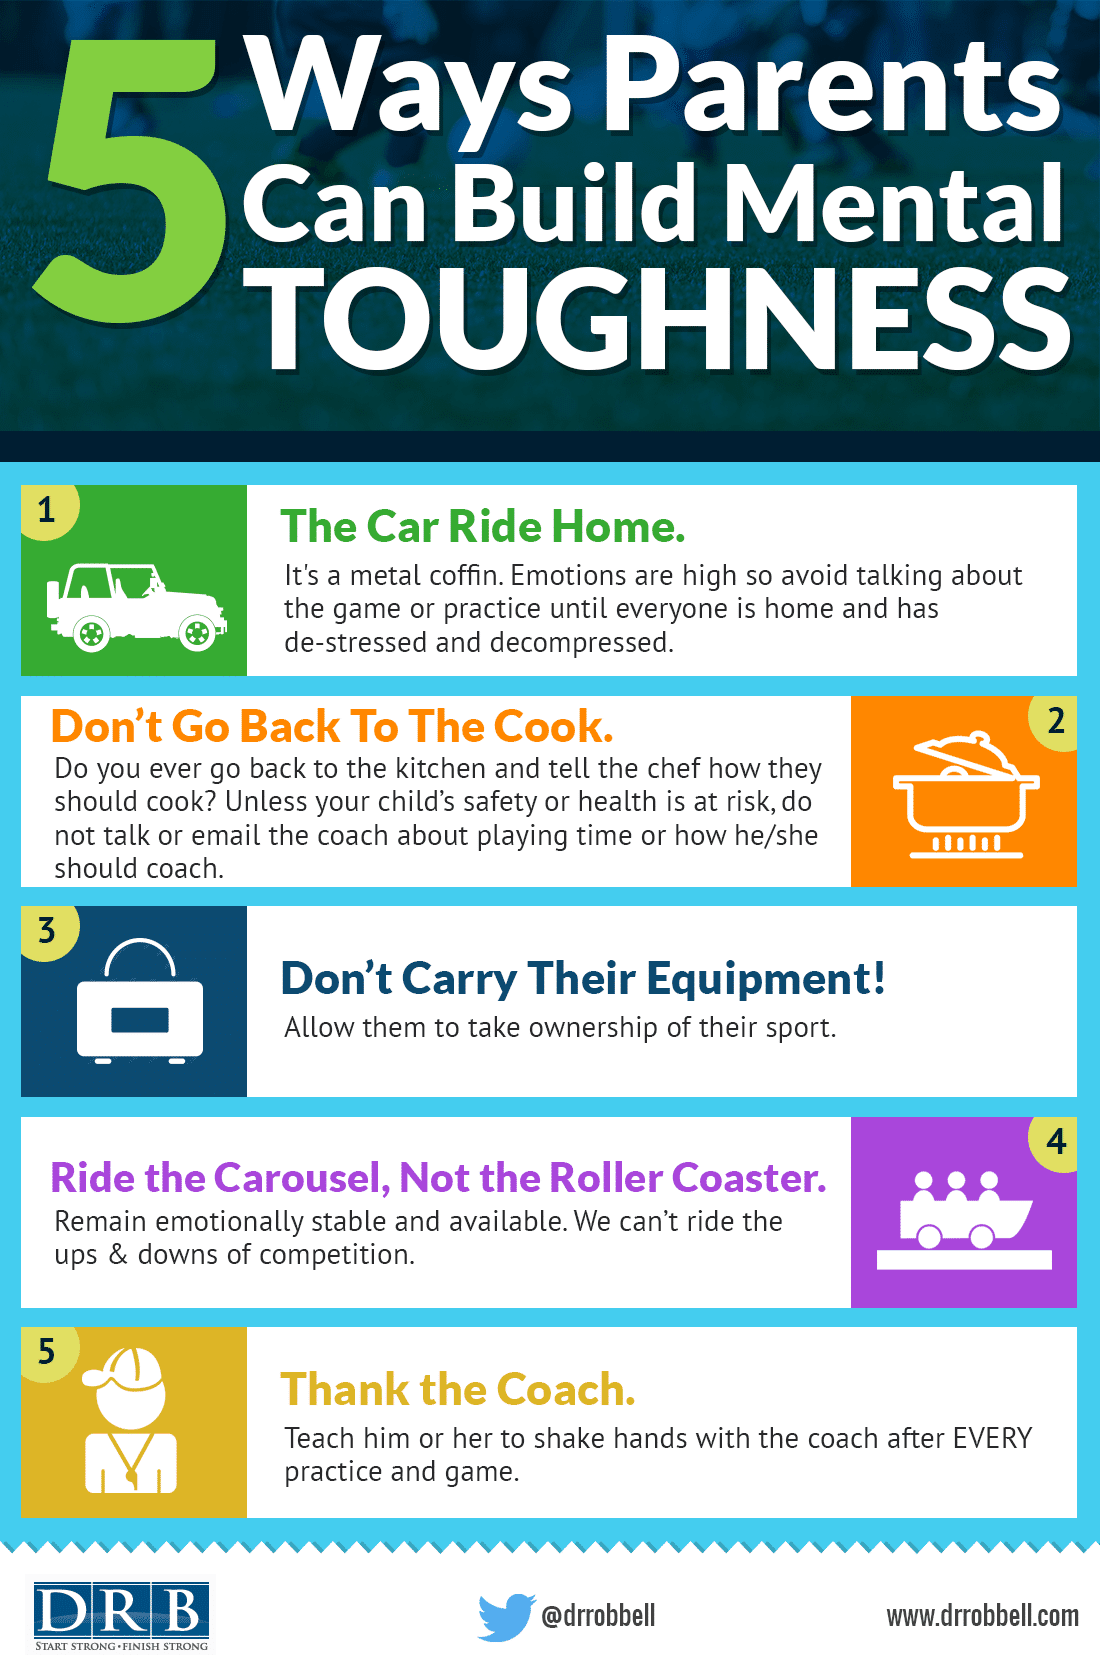 Infographic 5 Ways Parents Can Build Mental Toughness